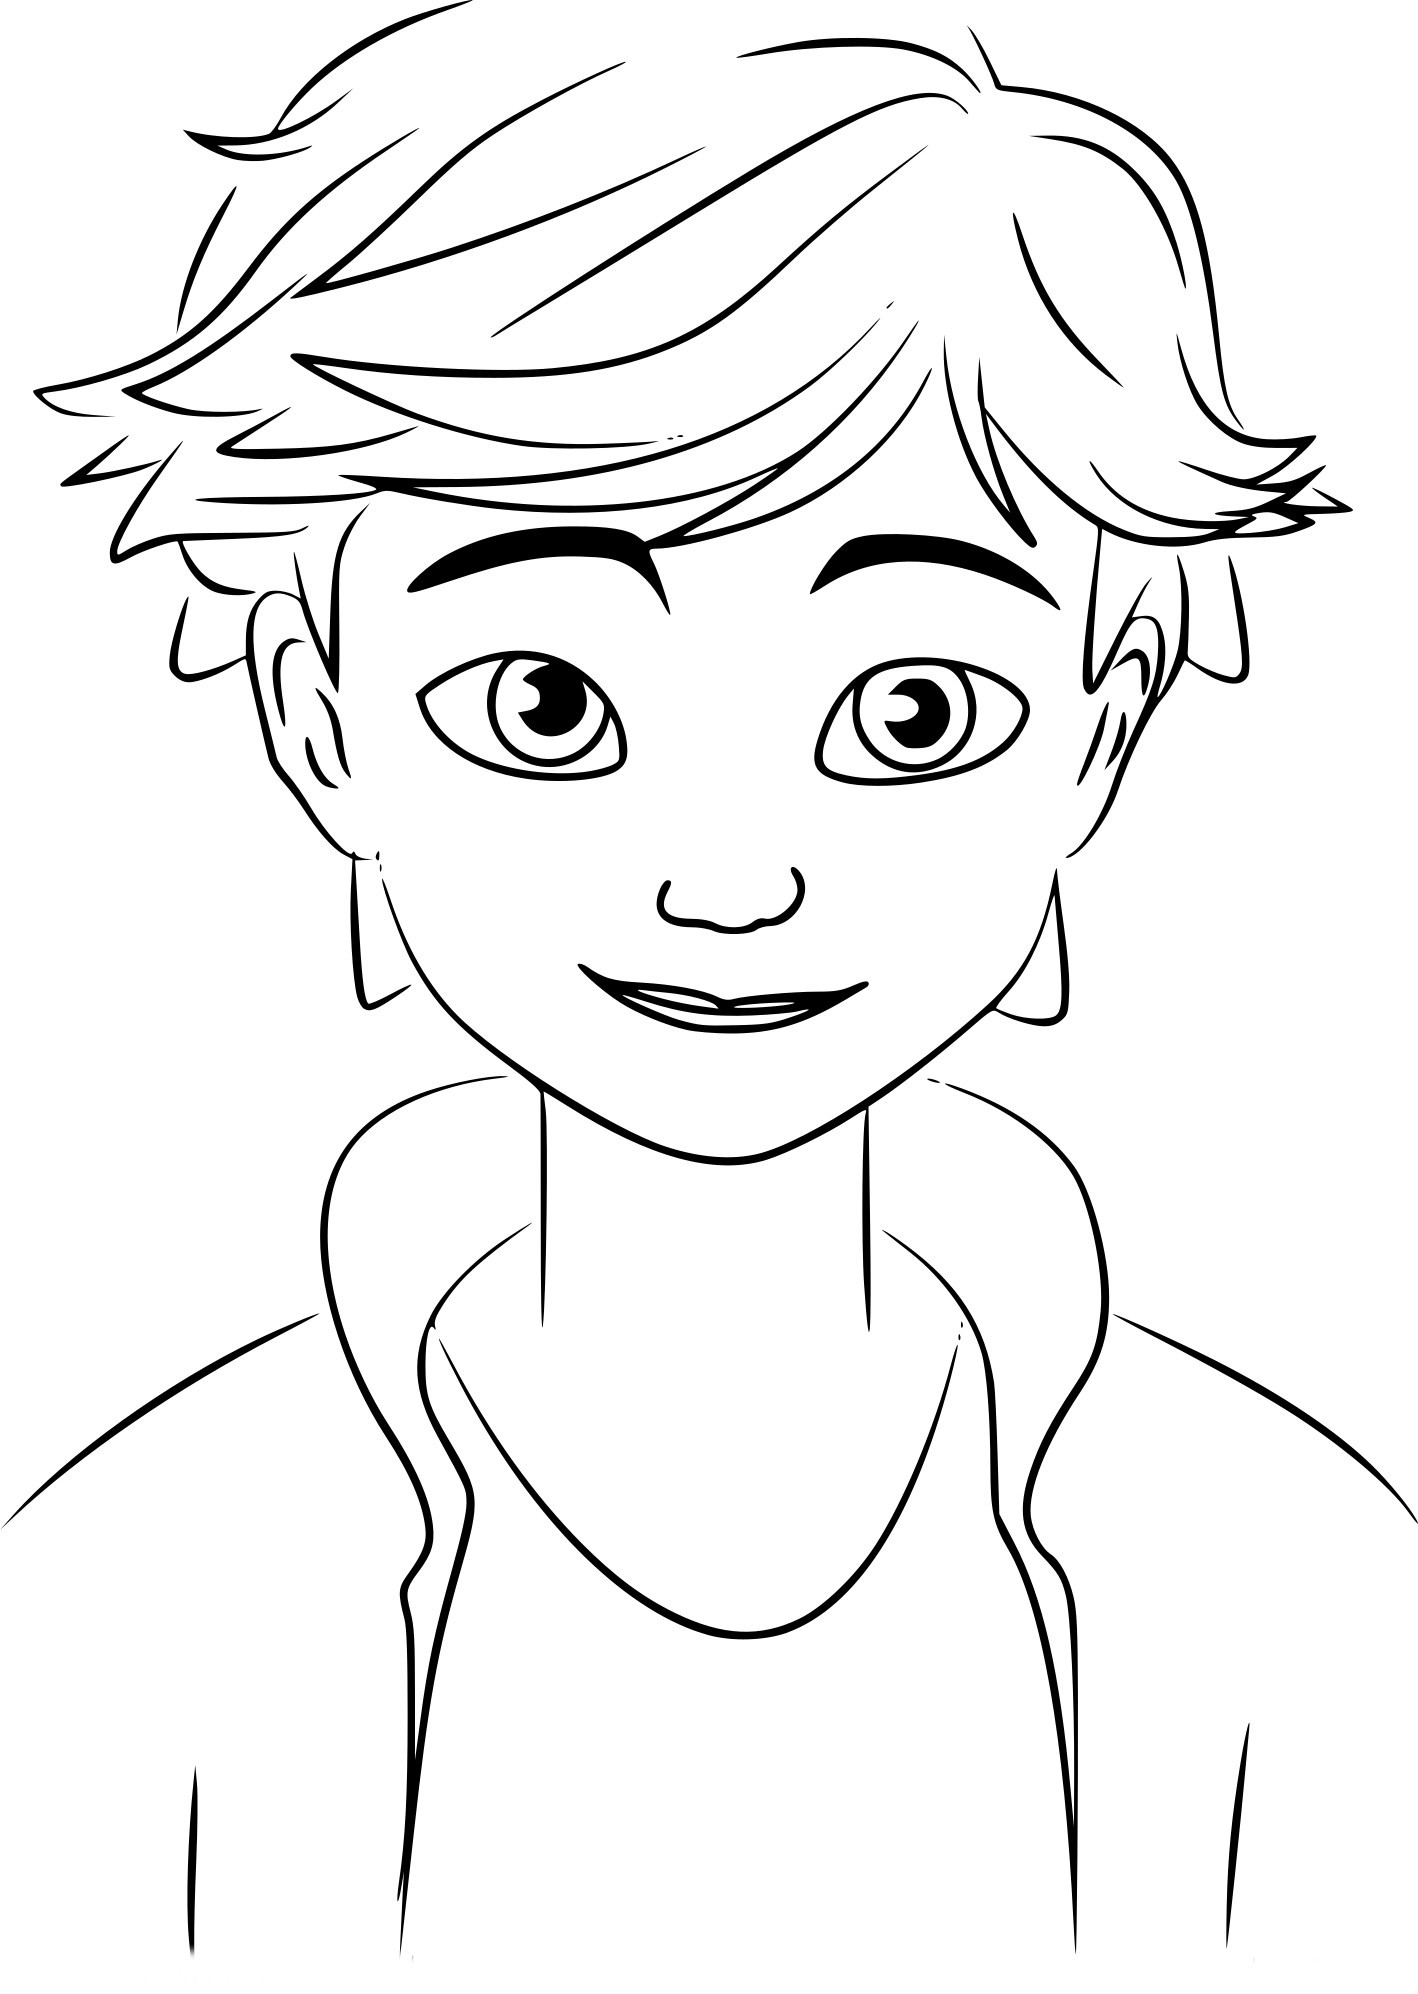 Miraculous Coloring Pages at GetDrawings | Free download